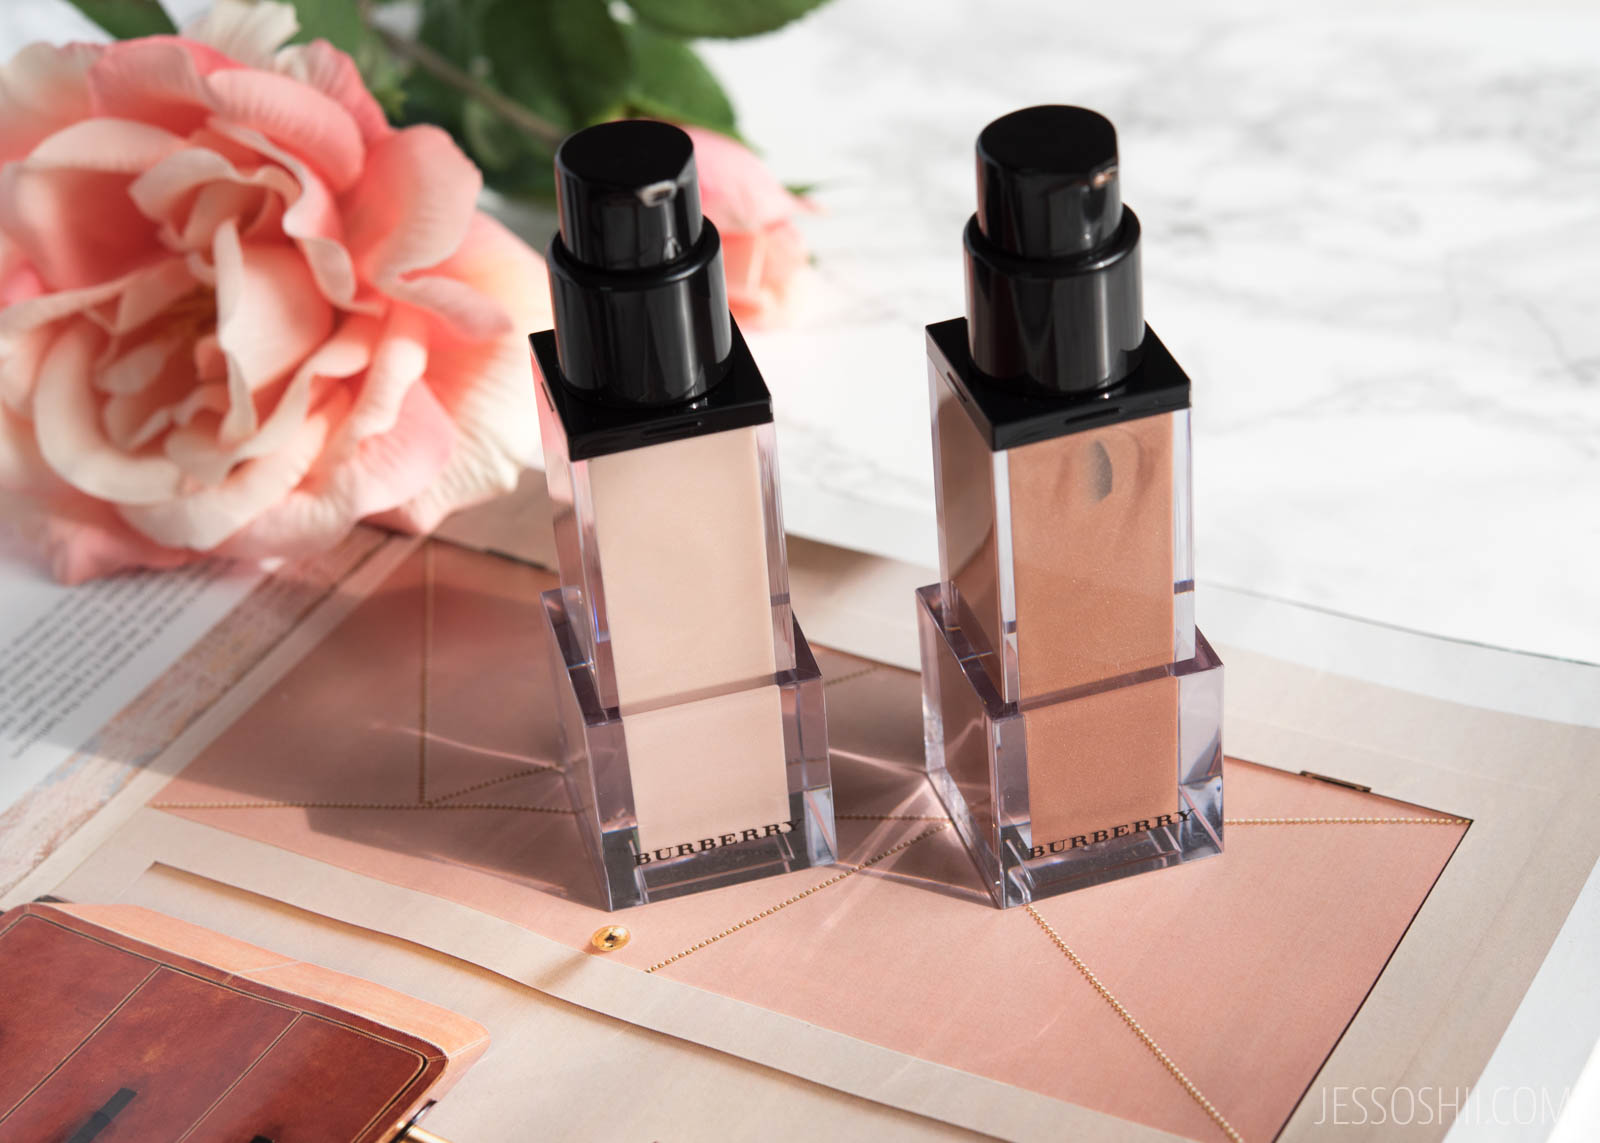 Burberry Fresh Glow Luminous Fluid Base Nude Radiance, Golden Radiance Review